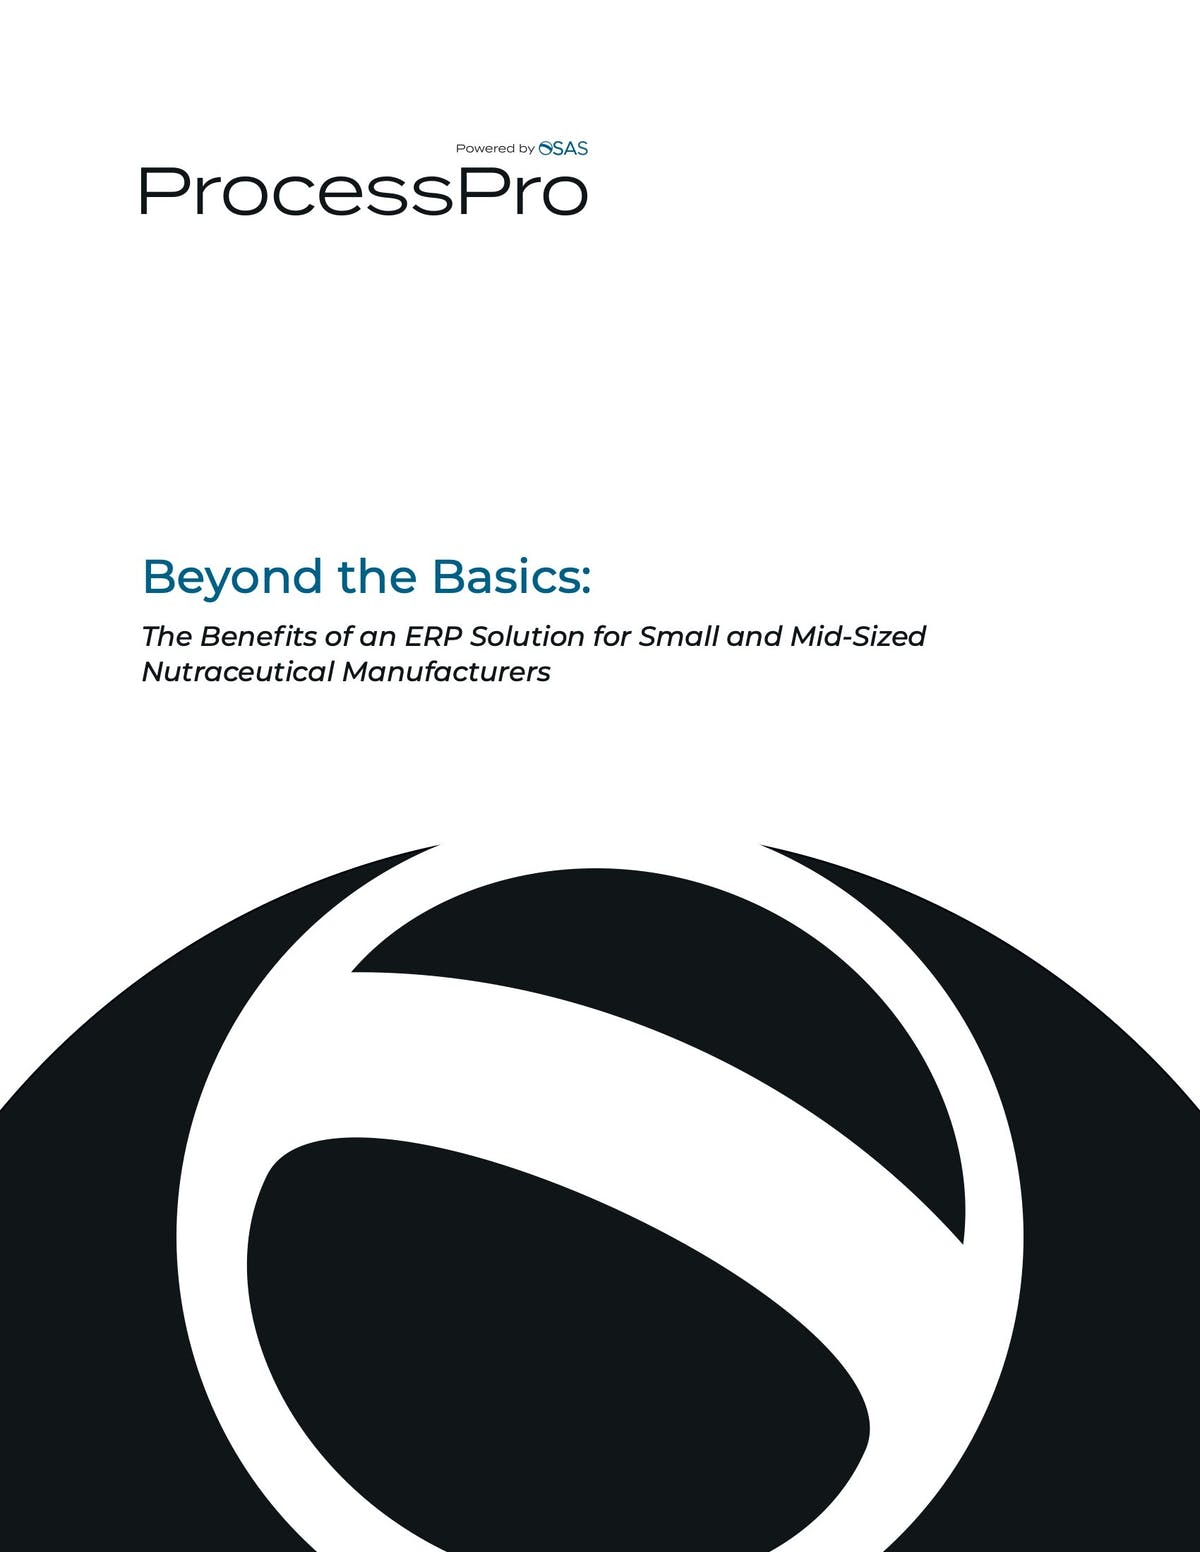 ProcessPro White Paper - The Benefits of an ERP Solution for Small and Mid-Sized Nutraceutical Manufacturers